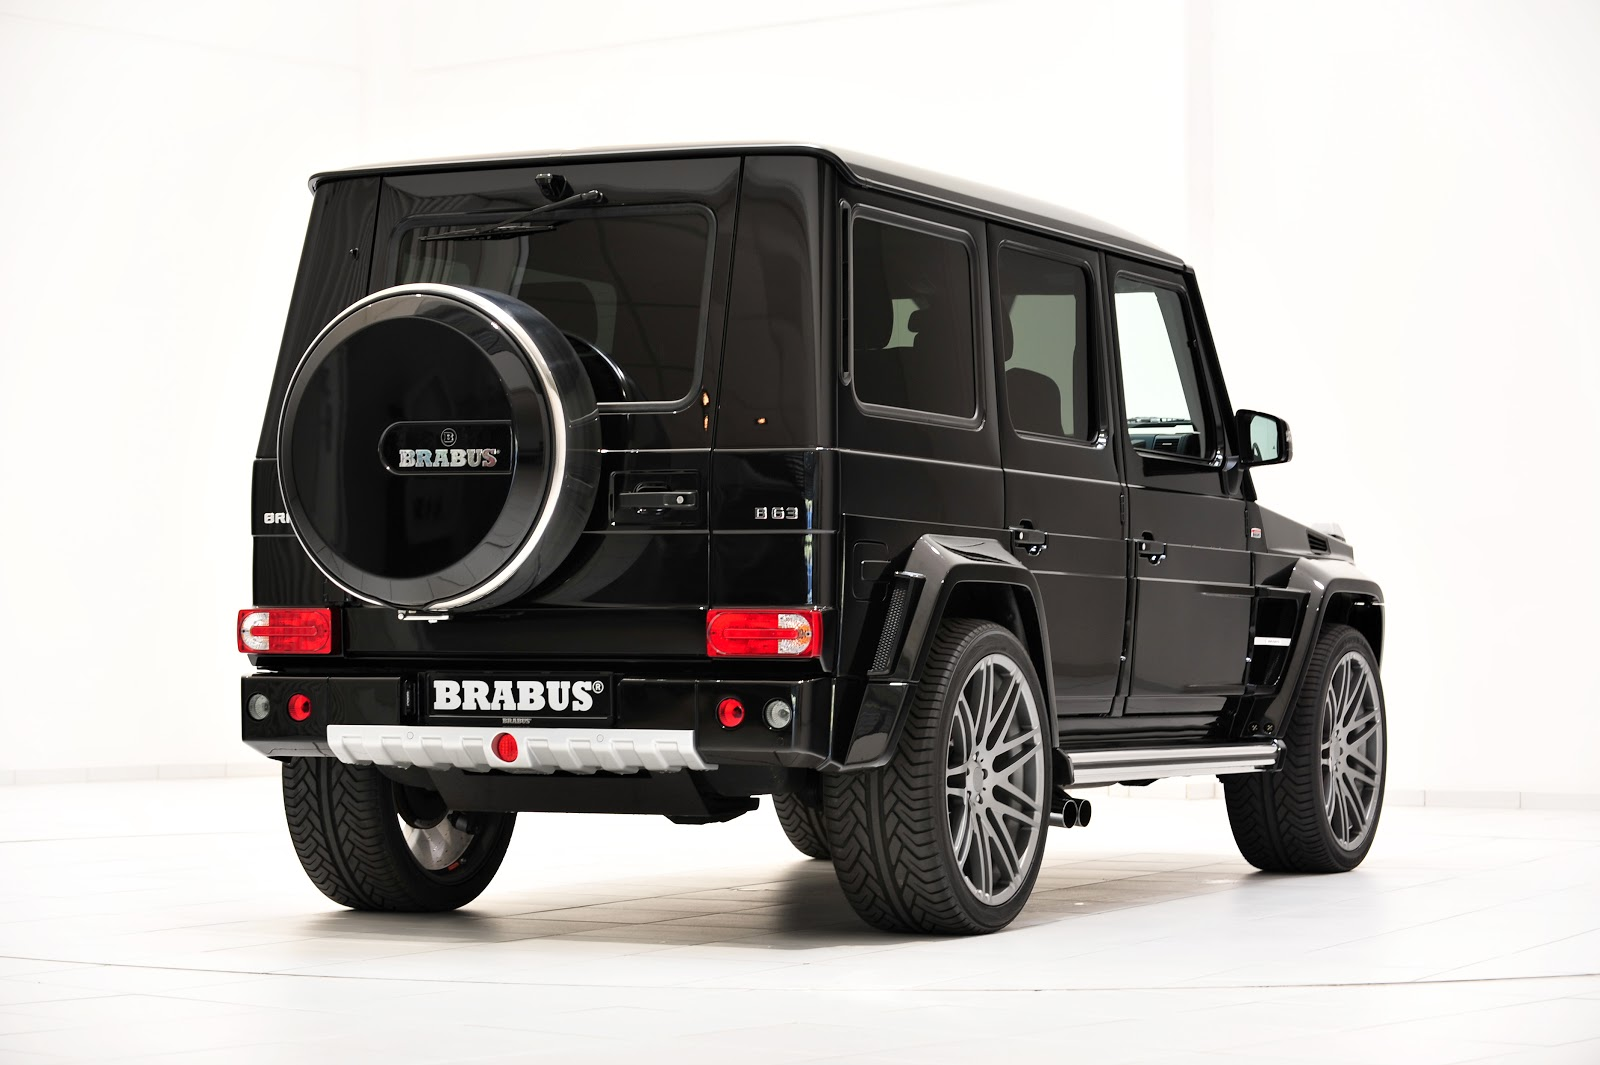 der tuningblogger mercedes g 63 amg brabus tuning. Black Bedroom Furniture Sets. Home Design Ideas